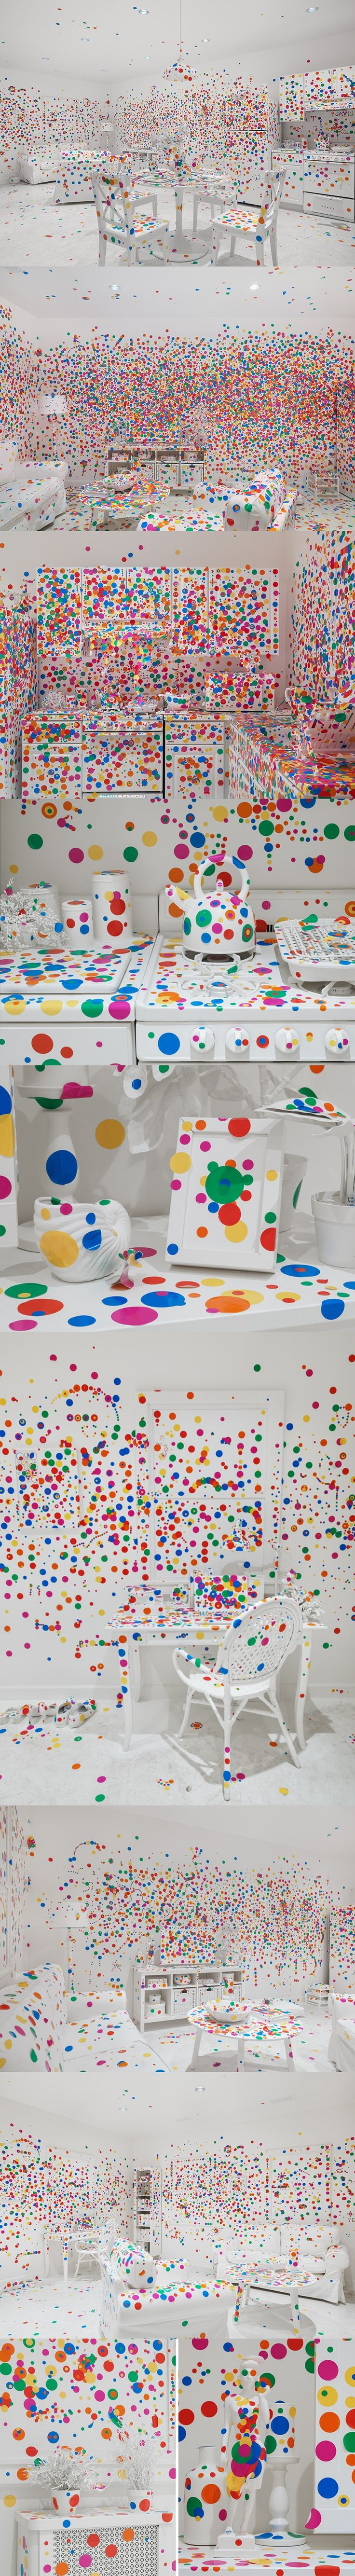 yayoi kusama - colorful dot-covered obliteration room to new york. Great inspiration for bedroom installation for anxiety and mental health with enlarged posters and illustrated diary of anxious persion on display on a desk or side table